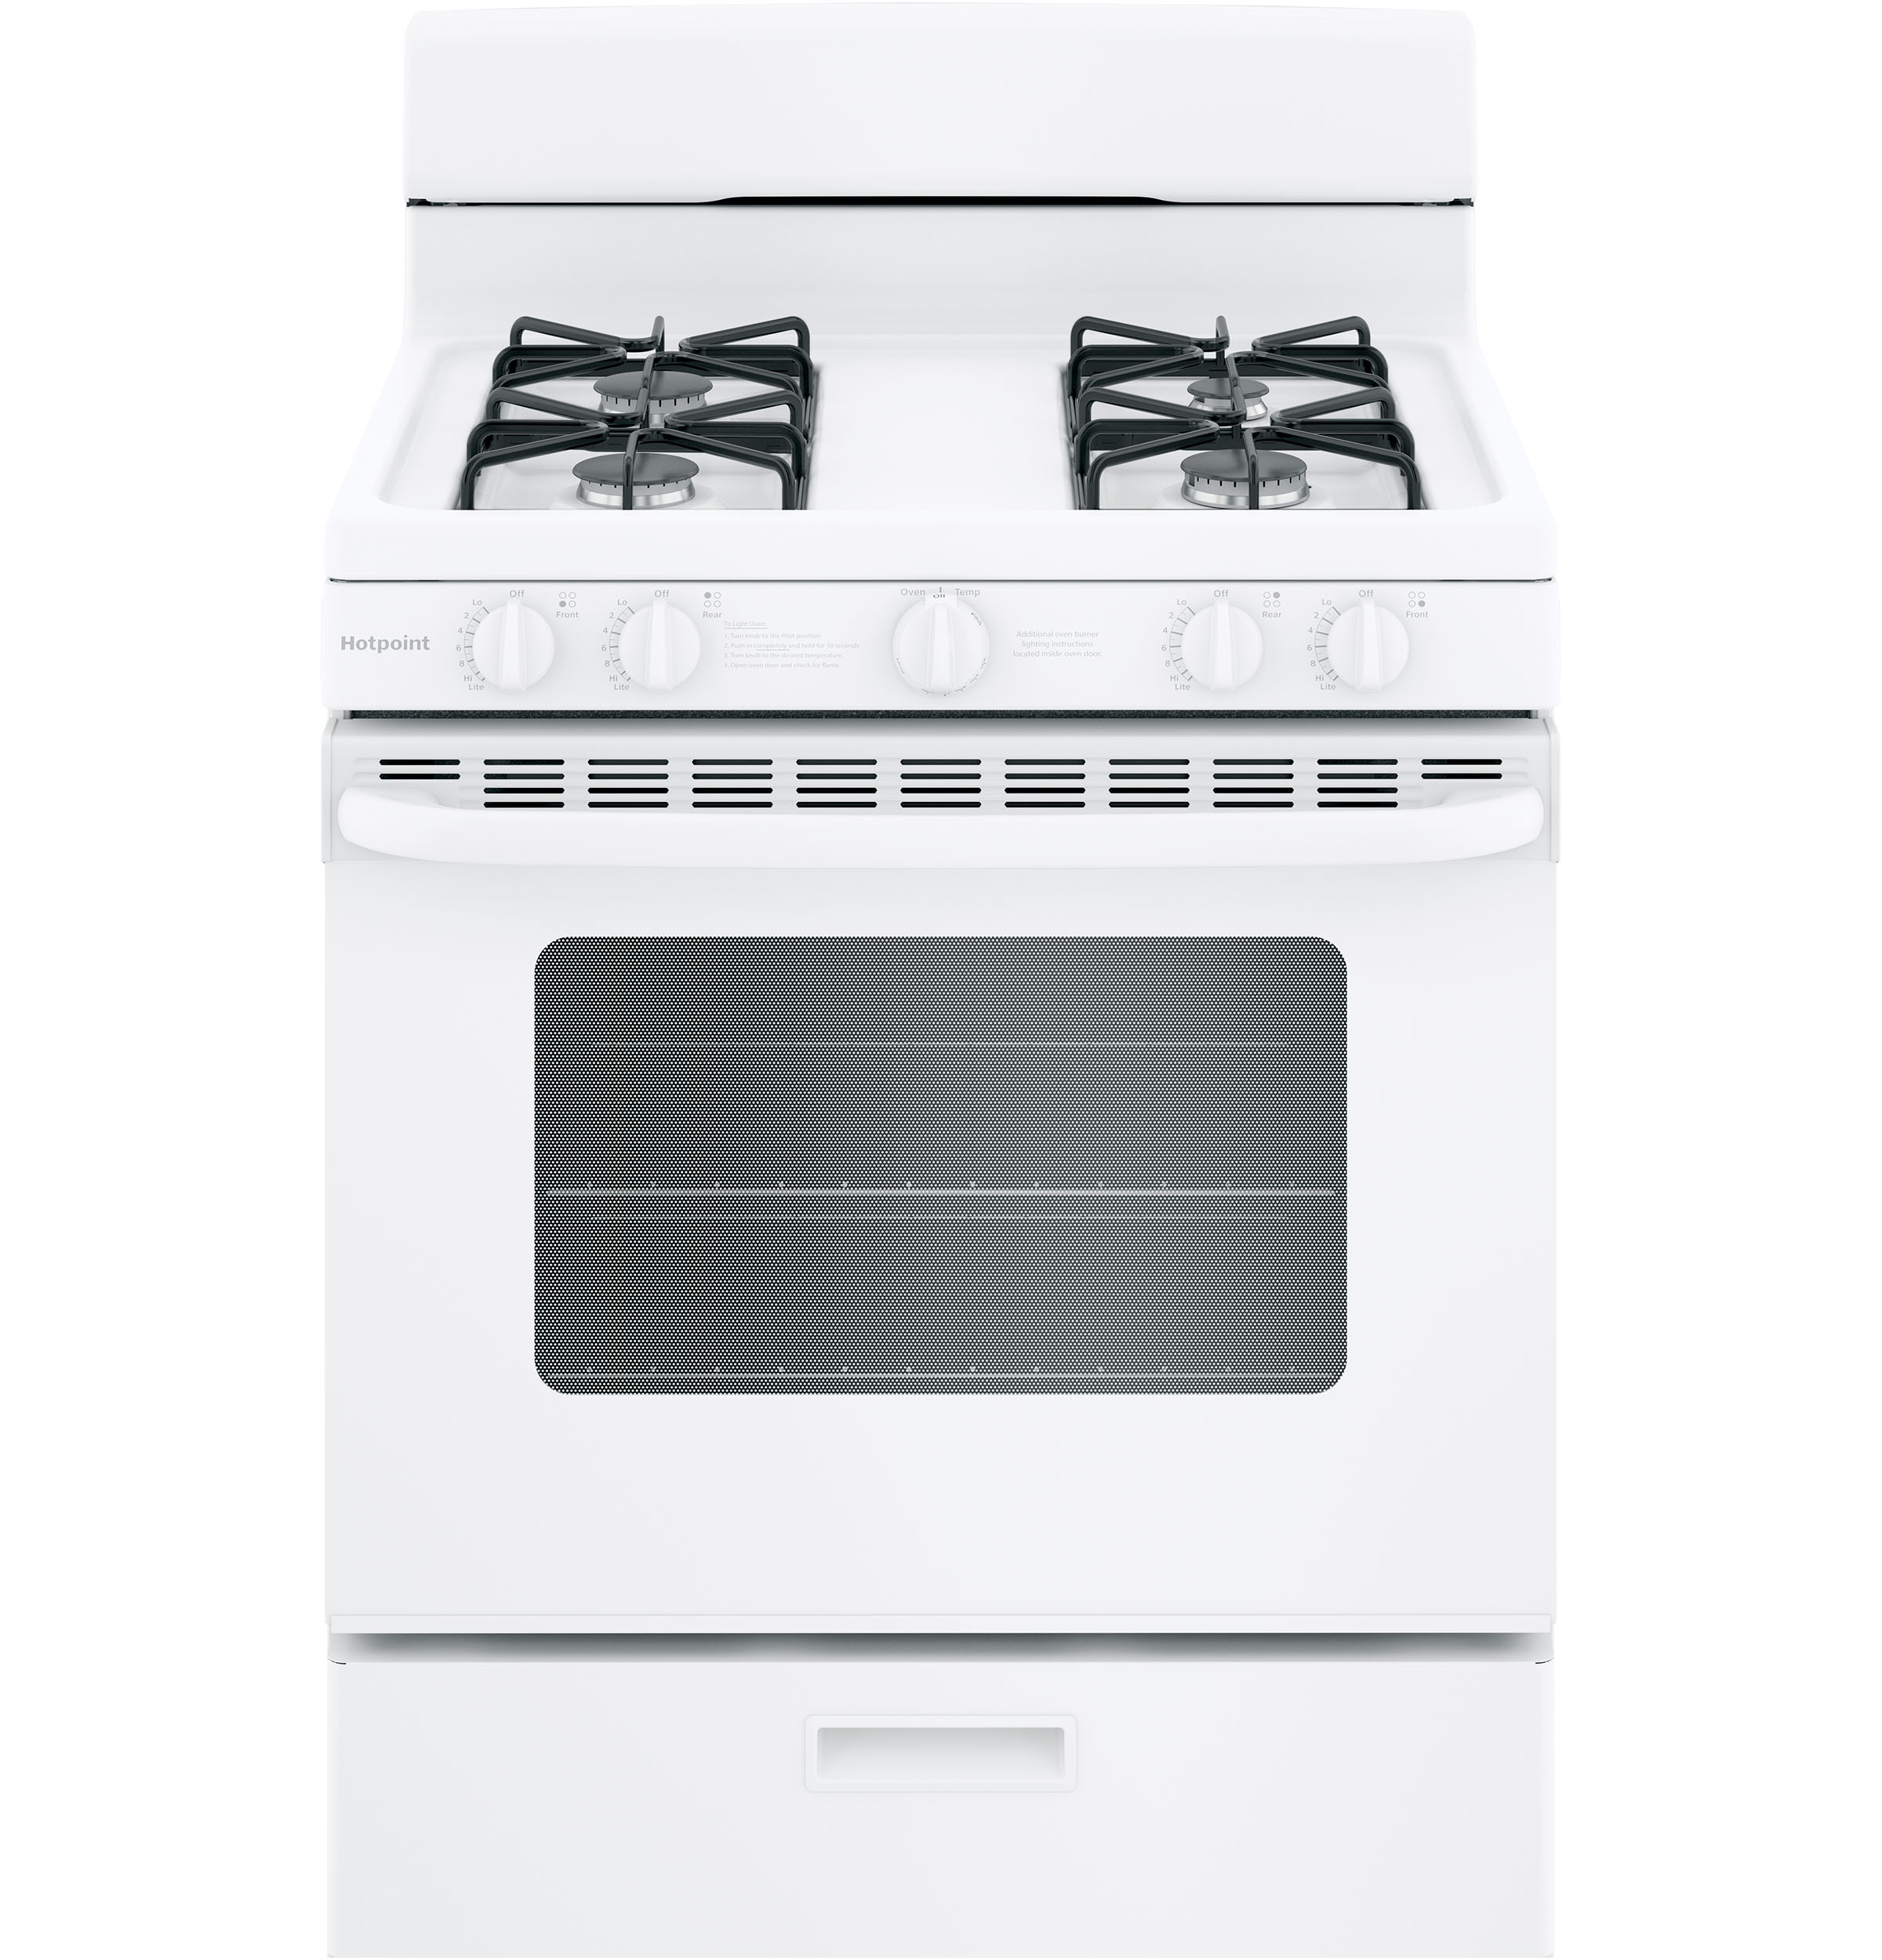 "Hotpoint Hotpoint® 30"" Free-Standing Gas Range with Cordless Battery Ignition"